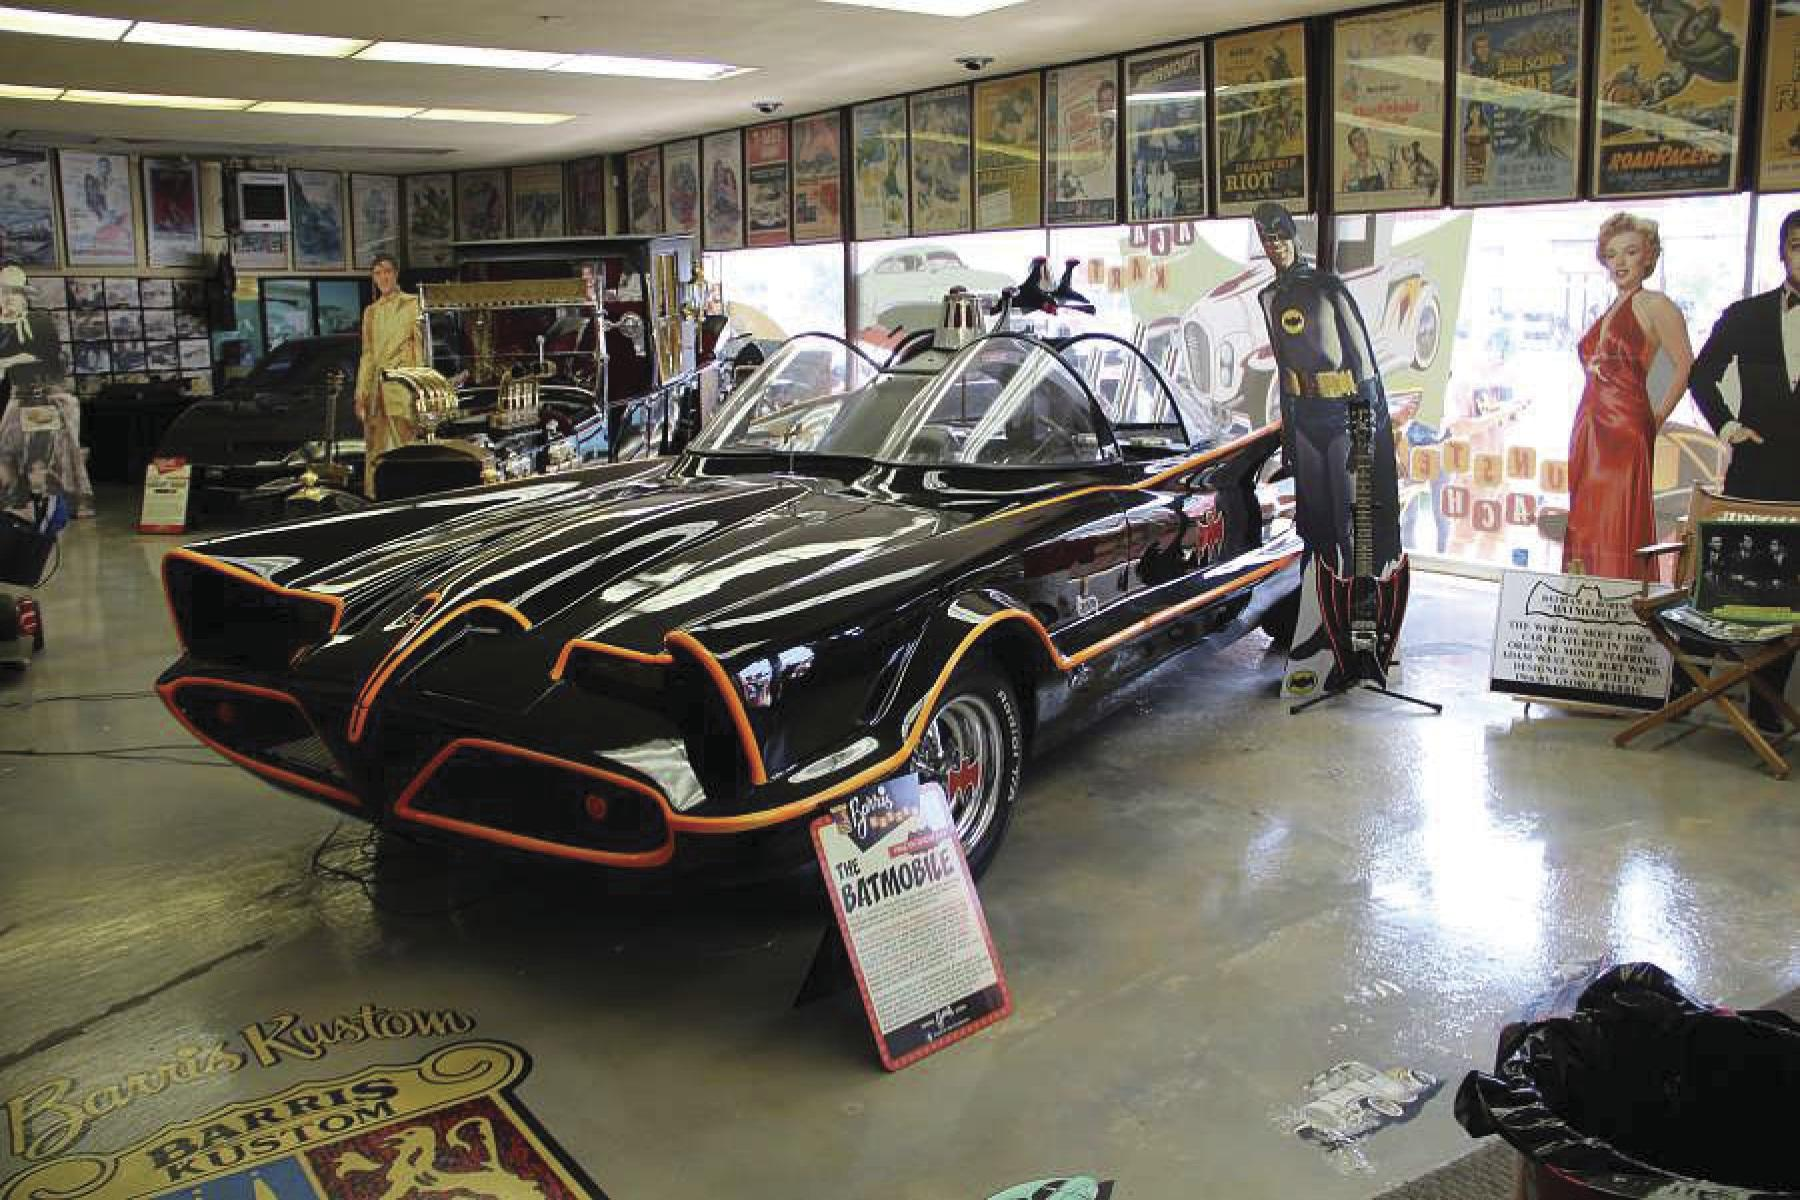 Eager fans, patrons camp overnight to buy George Barris' memorabilia